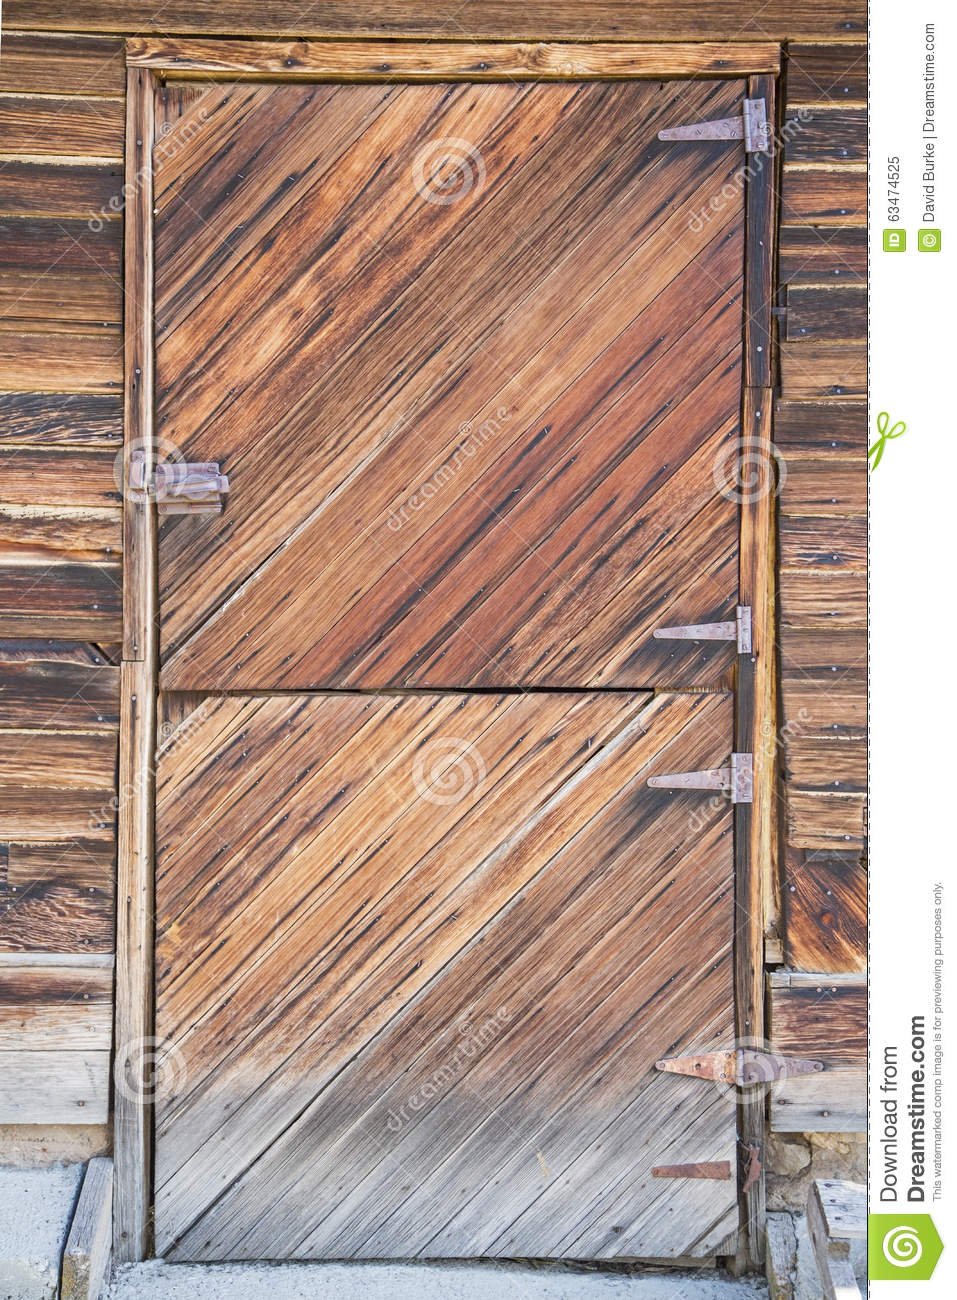 door into the western hay livestock barn has rusty hinges and door ...